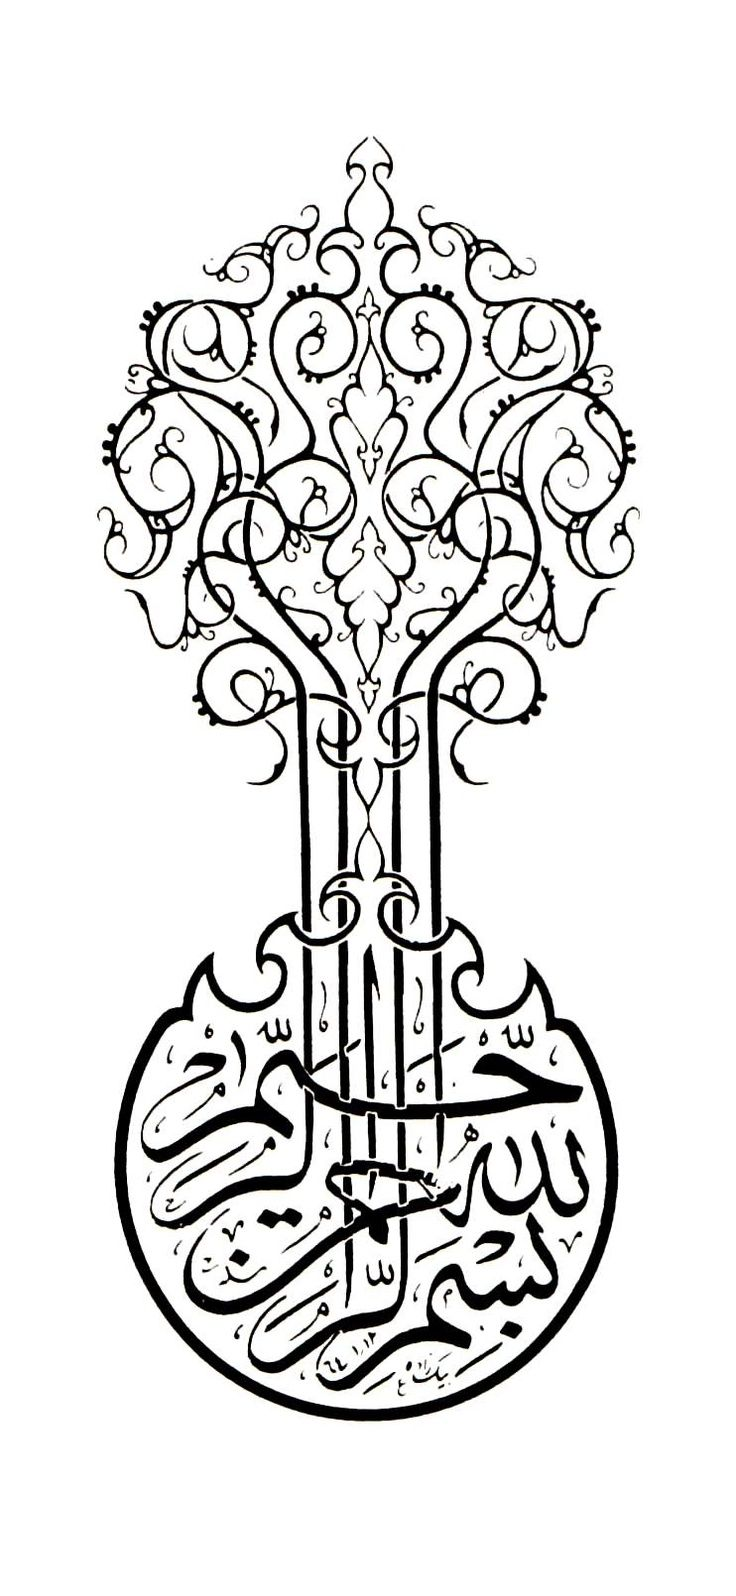 Arabic calligraphy‍♂️‍♀️‍♀️Art‍♀️ ‍♀️‍♀️More Pins Like This At FOSTERGINGER @ Pinterest